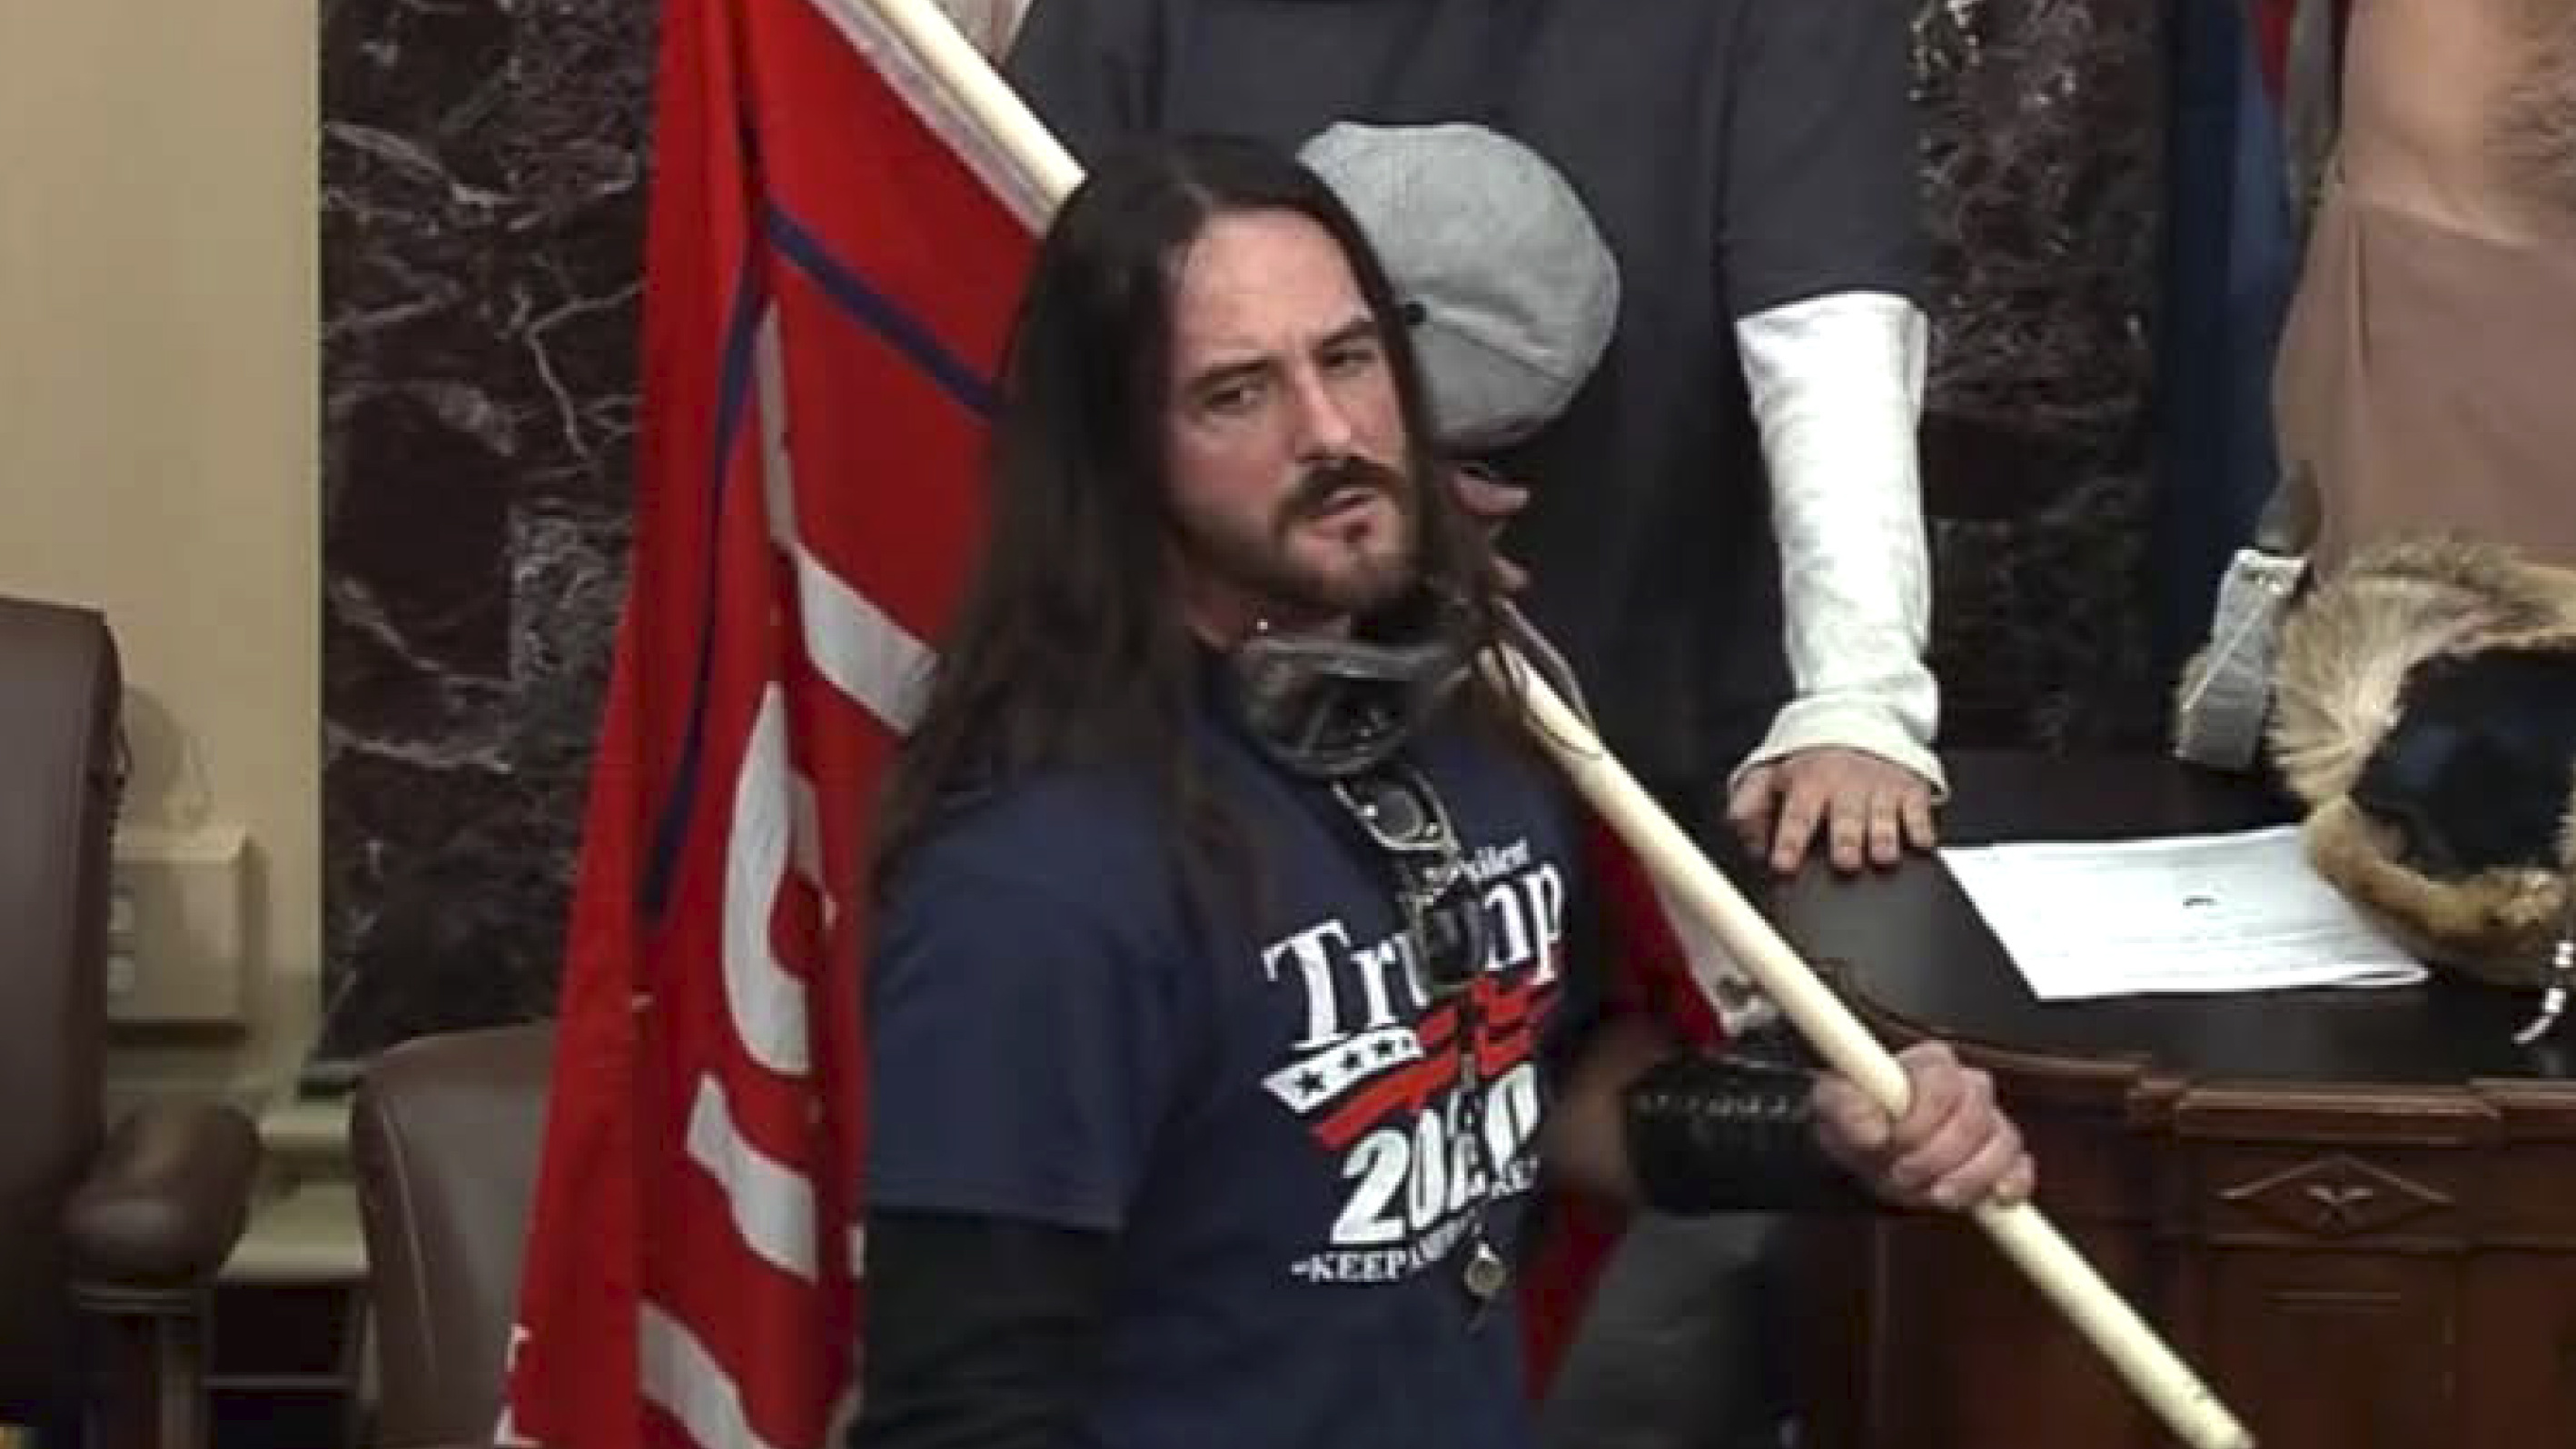 Capitol Rioter Who Walked On Senate Floor On Jan. 6 Sentenced To 8 Months In Prison